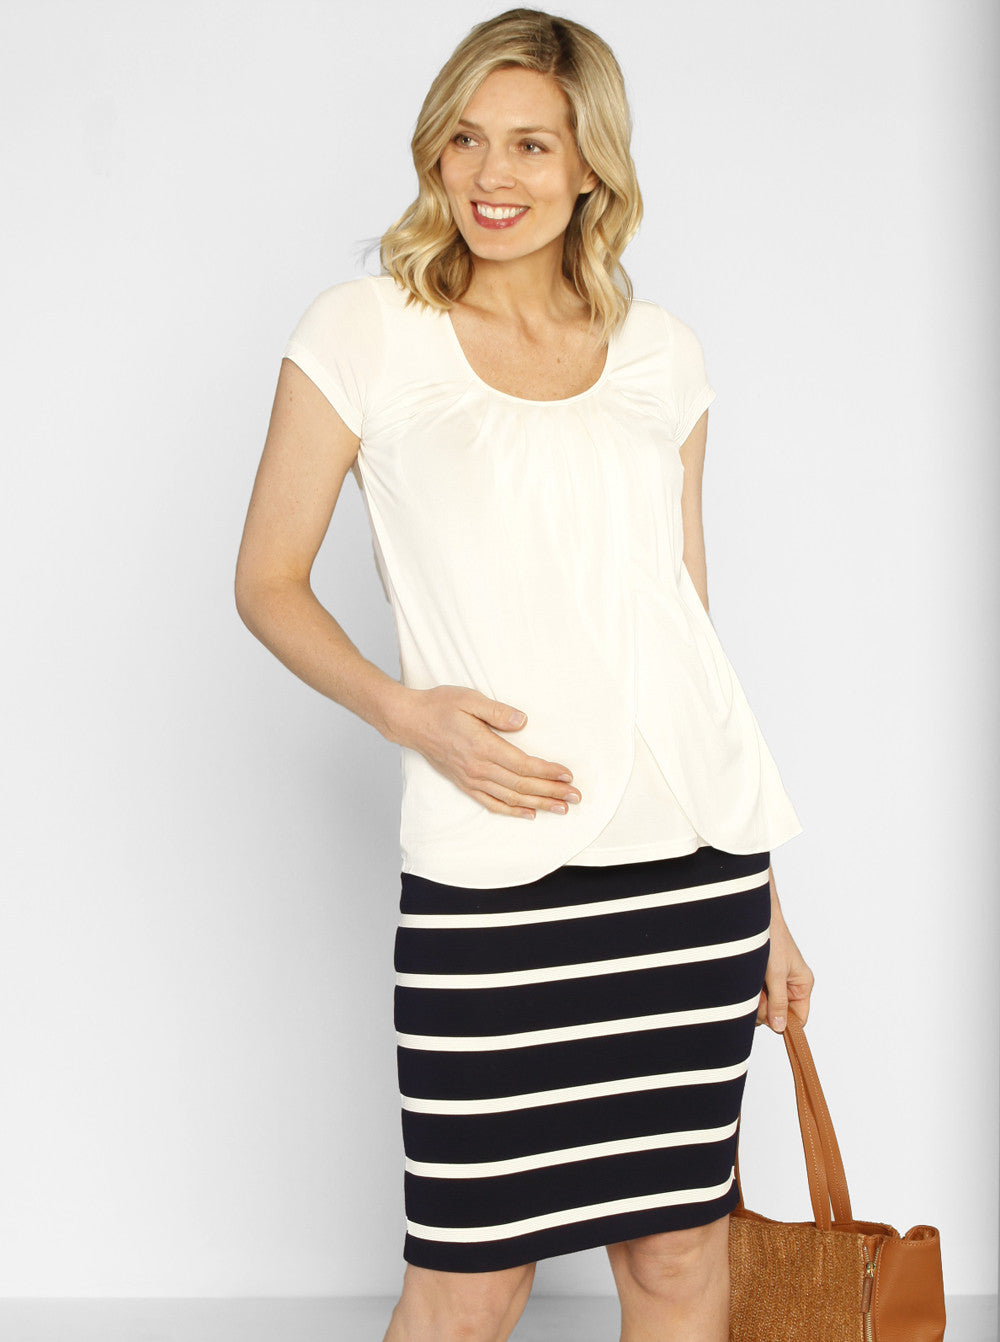 Fitted Cut Stretchy Skirt - Navy Stripes